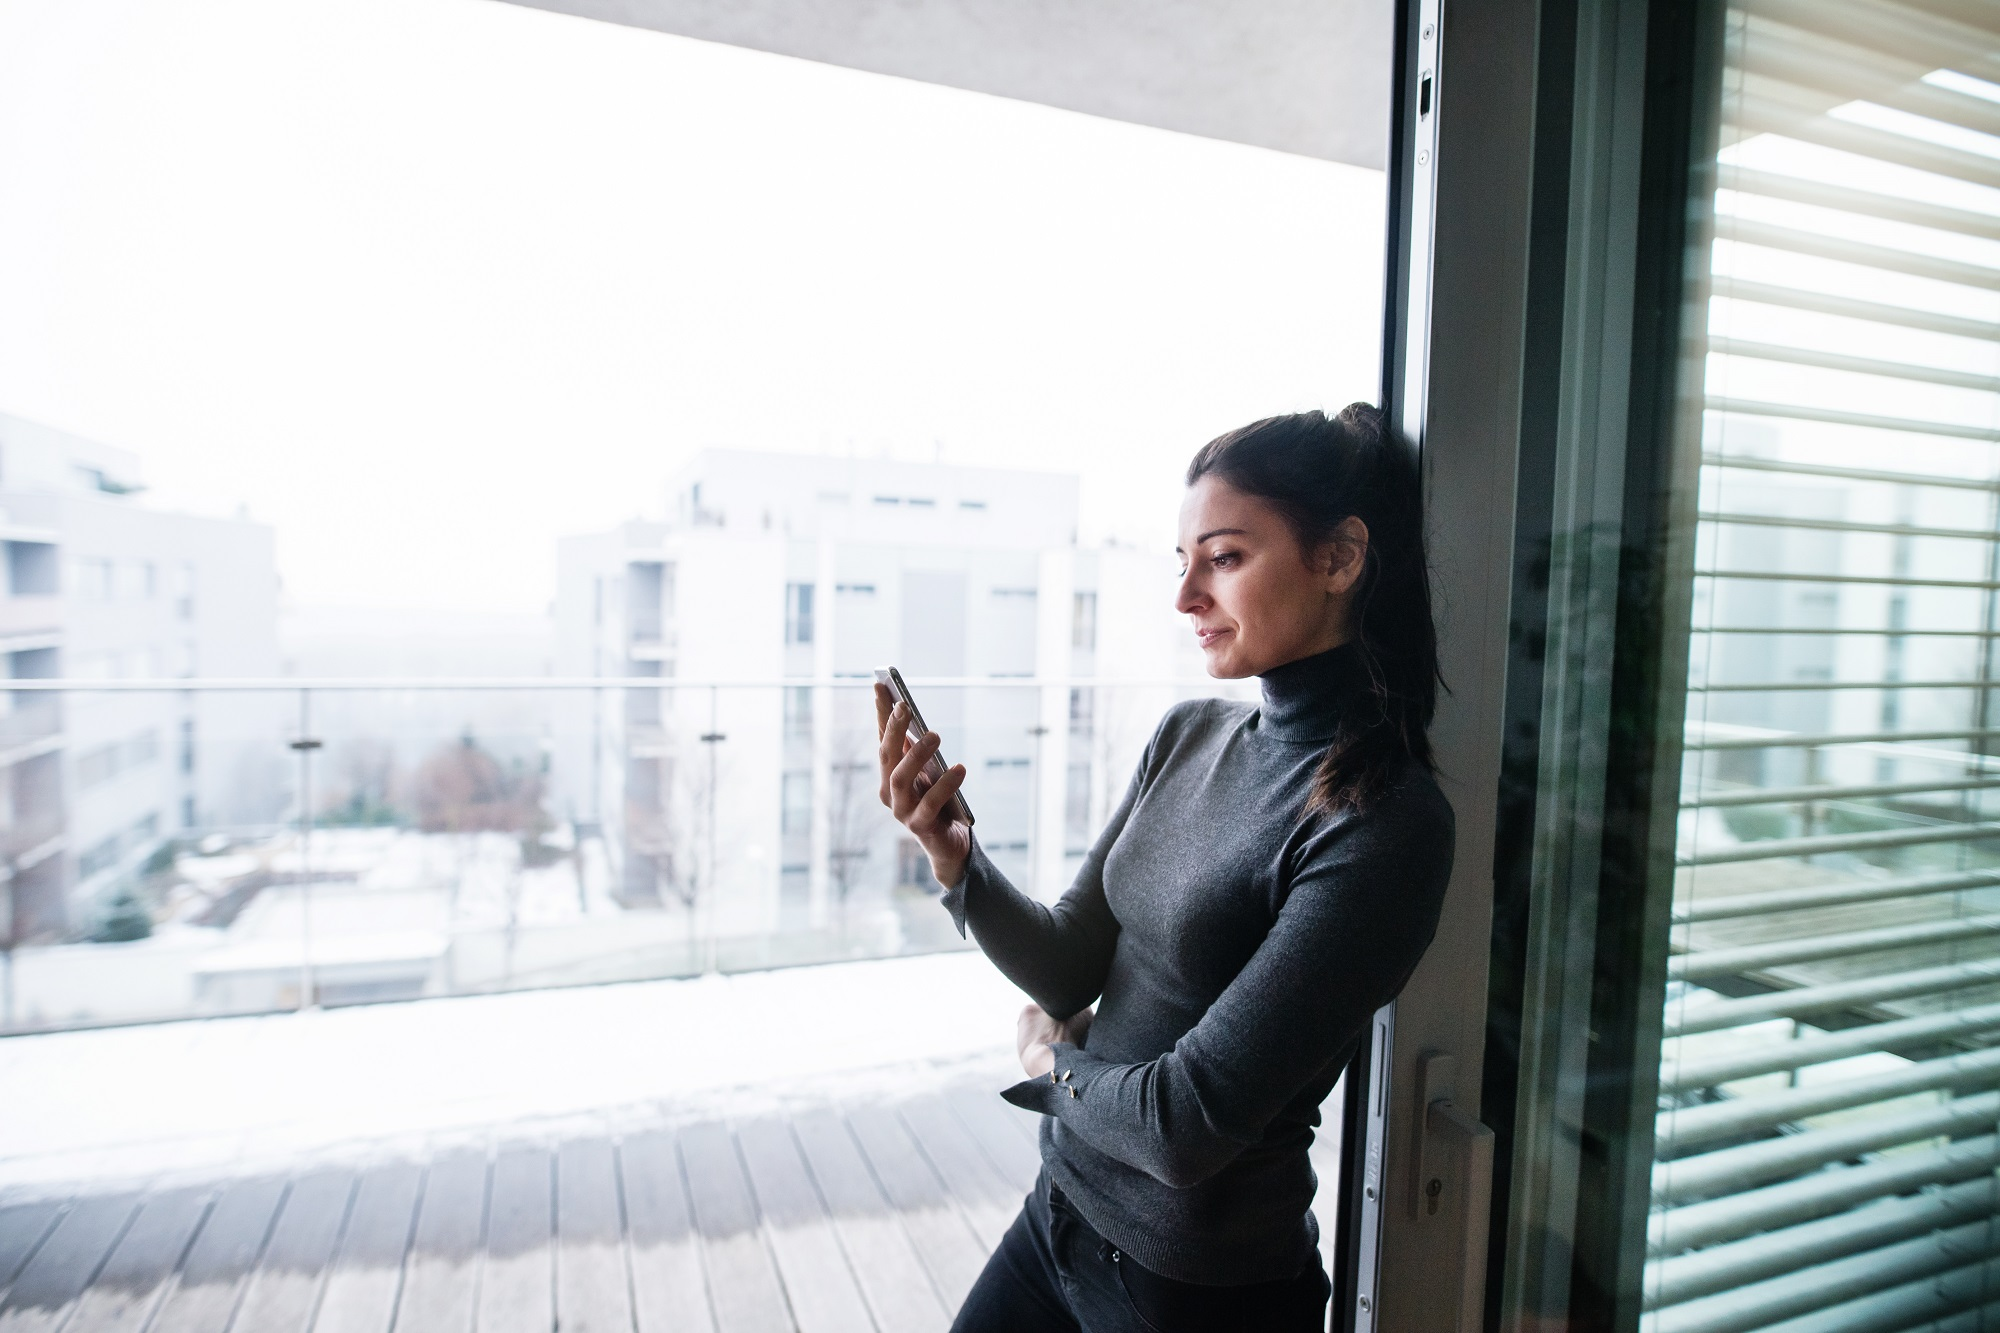 A woman standing by the window, holding smartphone.